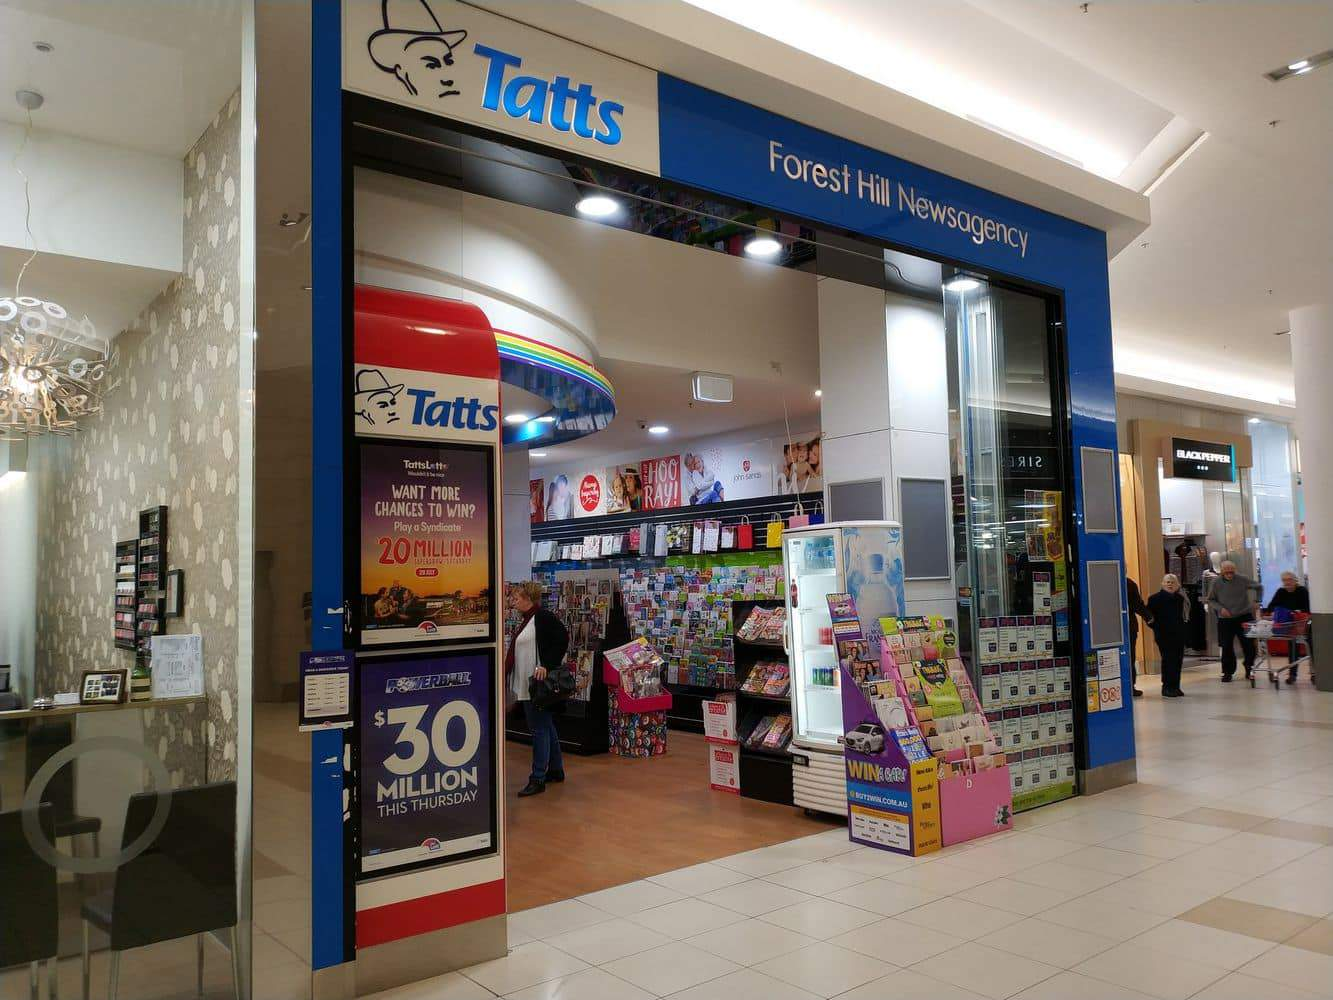 forest hill chasing shopping centre 08